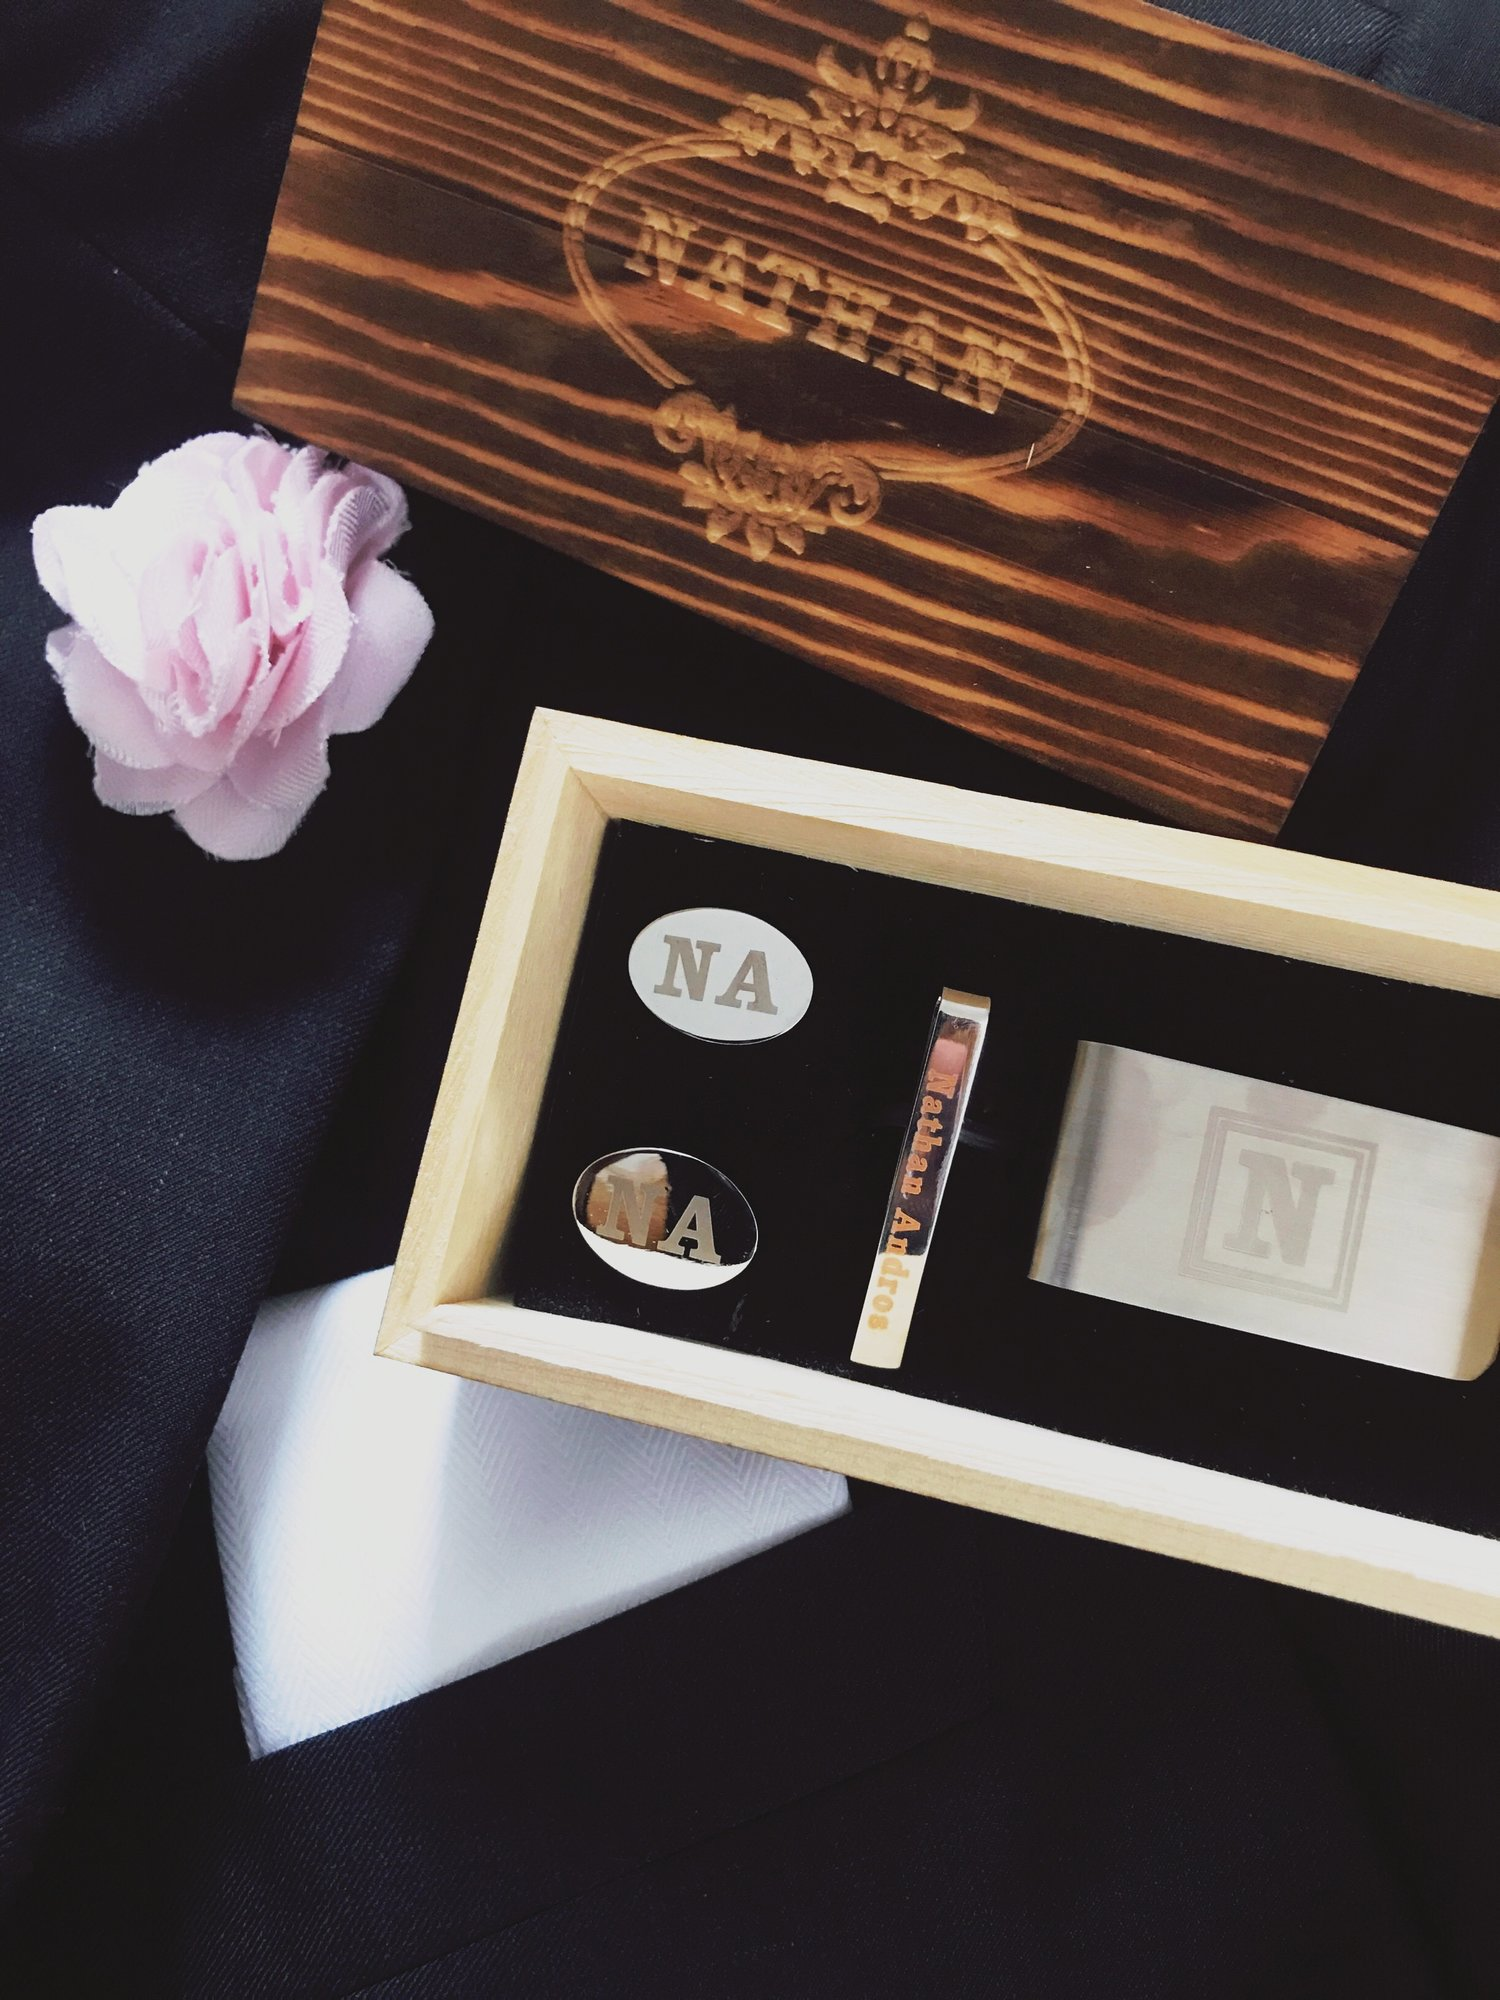 bc8902a5a0a9 Groovy Groomsmen Gifts